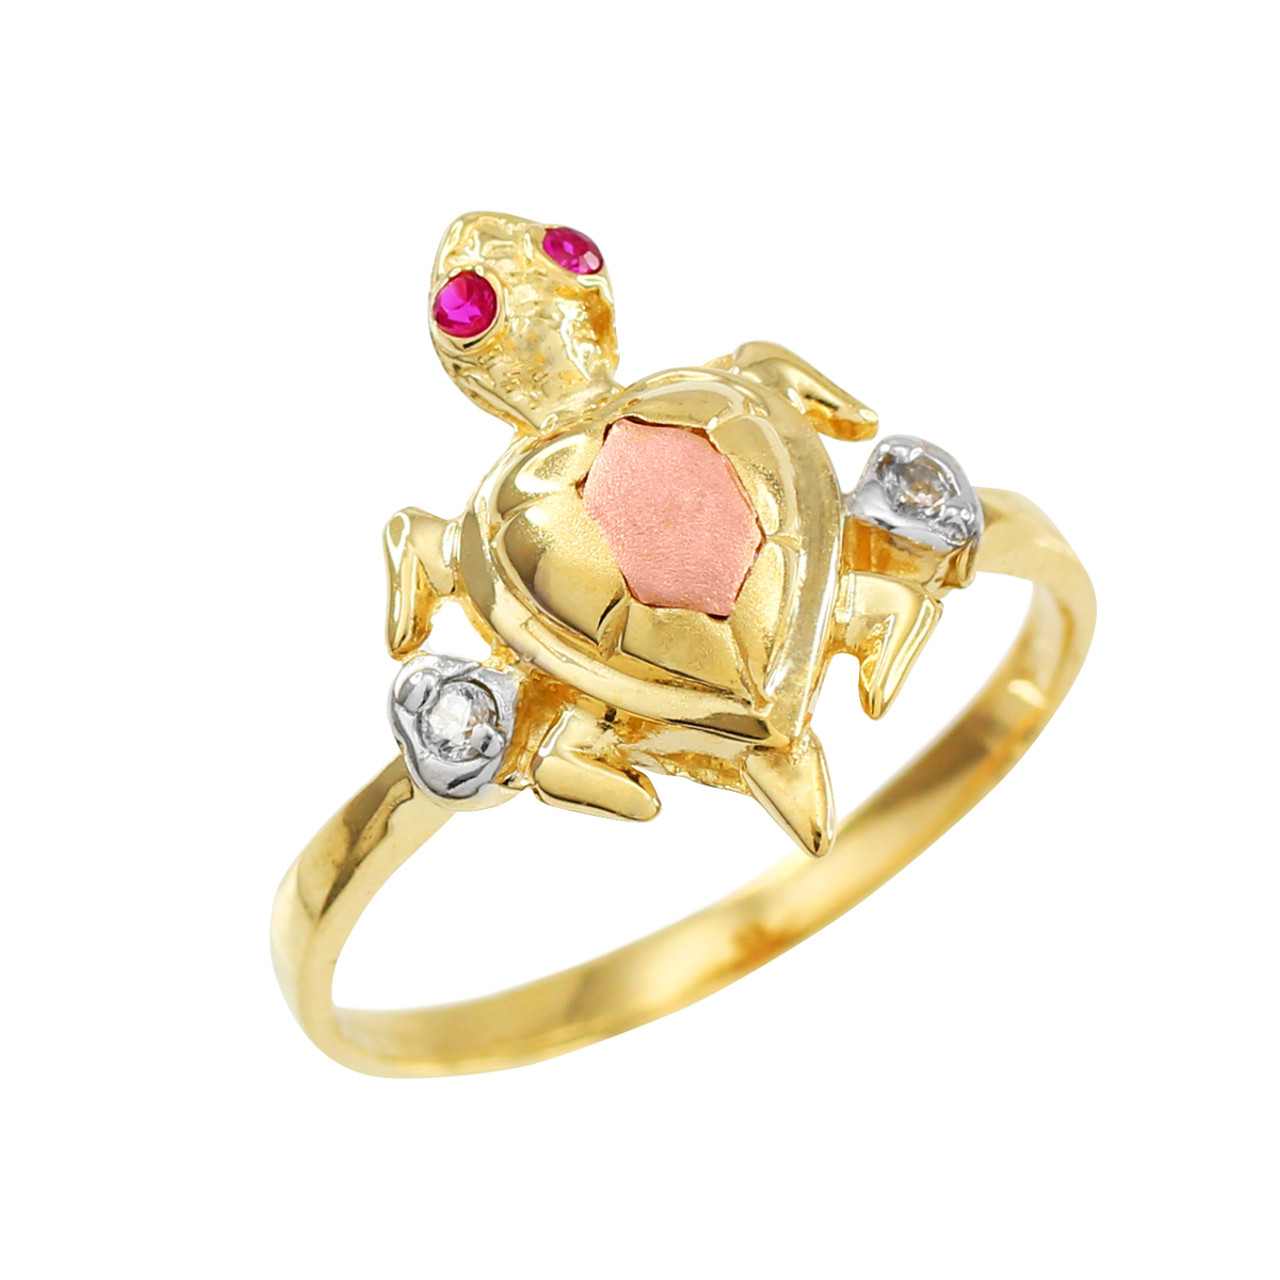 FREE SHIPPING SIZE 3 10KT GOLD CHILDREN/'S CUBIC ZIRCONIA TURTLE RING GIFT BOX